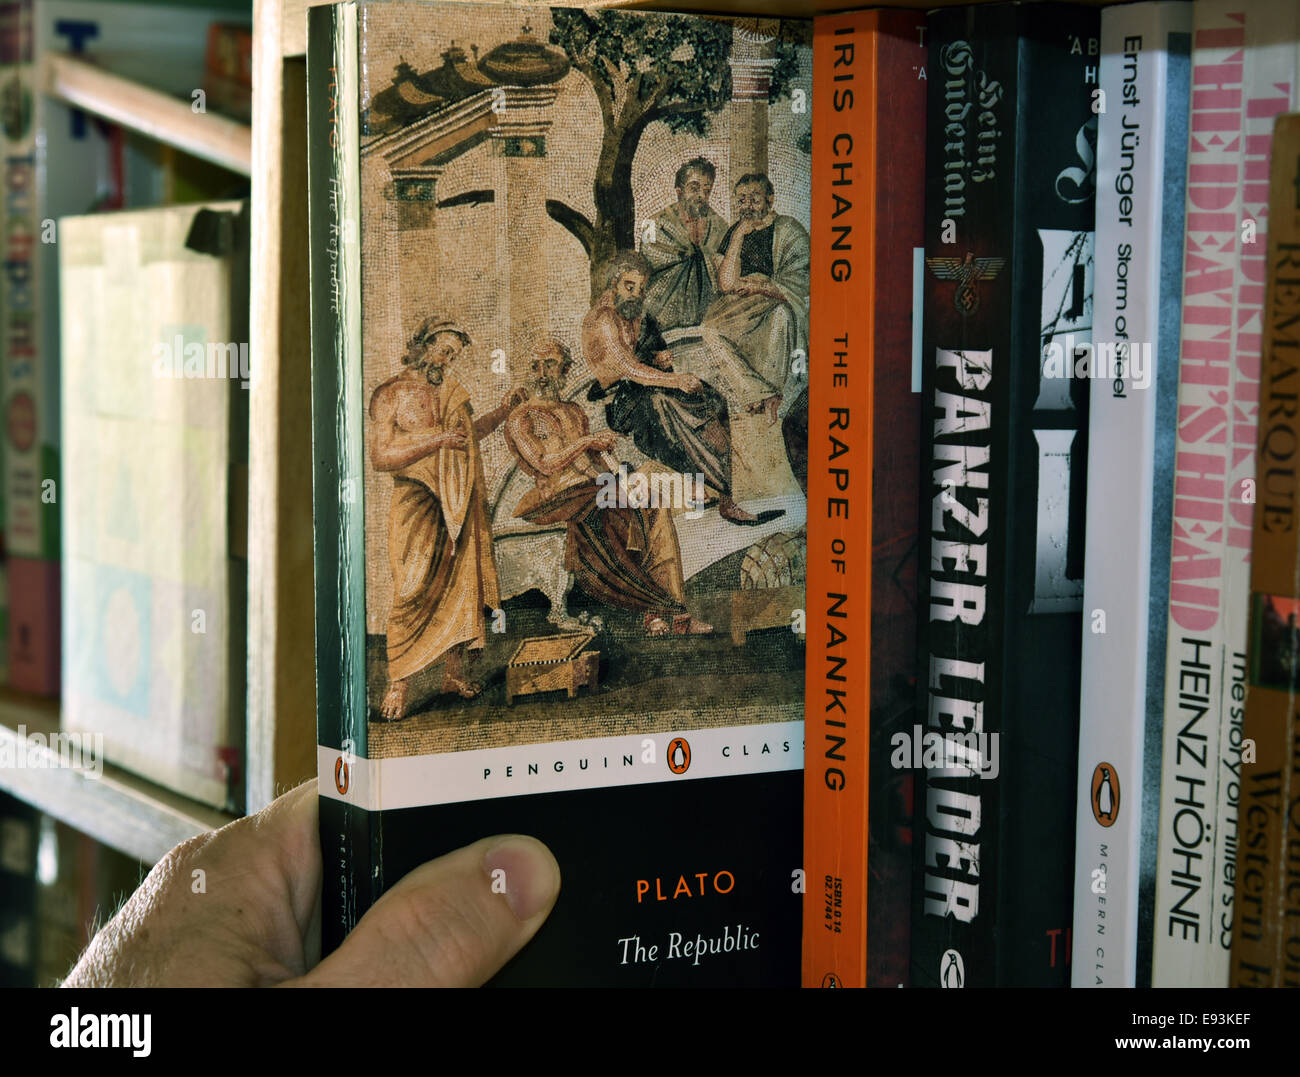 A hand removing a copy of Plato's The Republic from a bookshelf - Stock Image